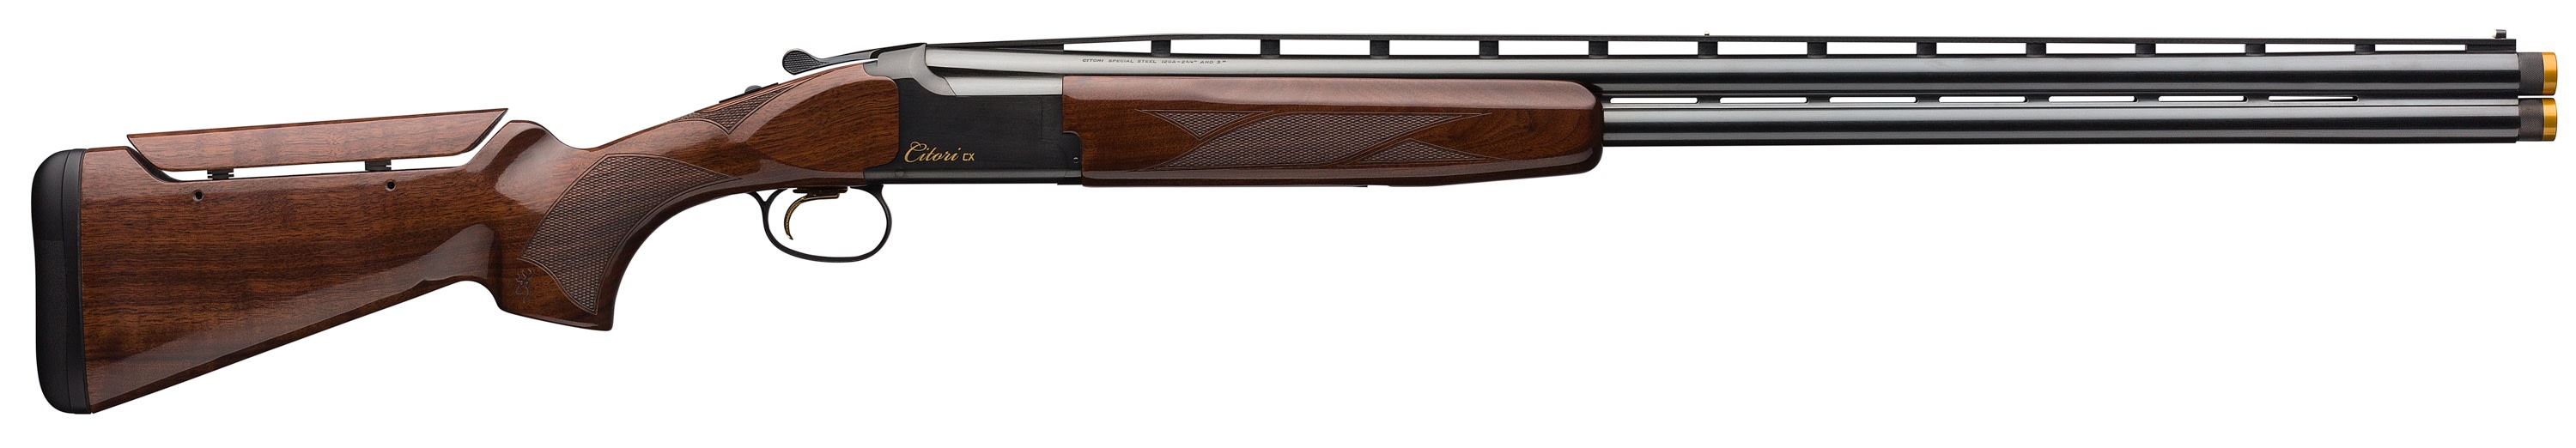 Browning Citori CX Over/Under 3'' 12 Gauge 32'' Blued Steel - American Walnut w/Adjustable Comb